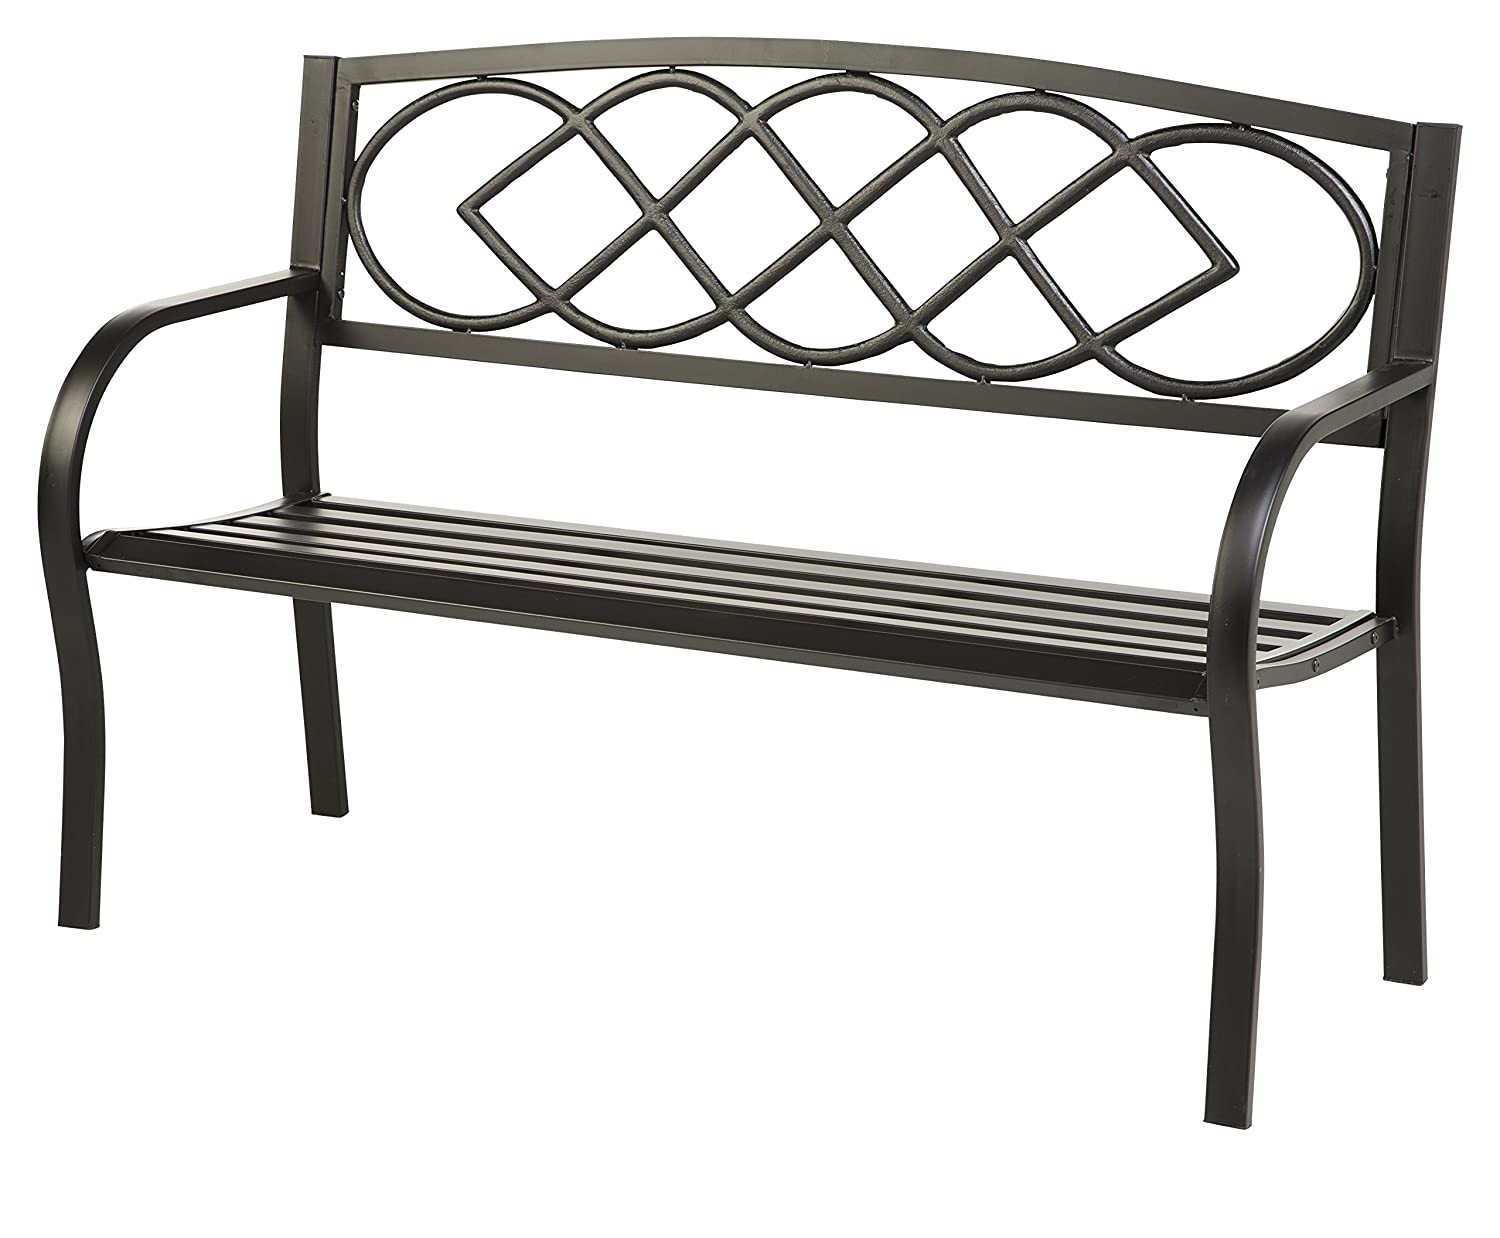 Celtic knot patio garden bench park yard outdoor furniture cast and tubular iron metal powder coat black finish classic decorative design easy assembly